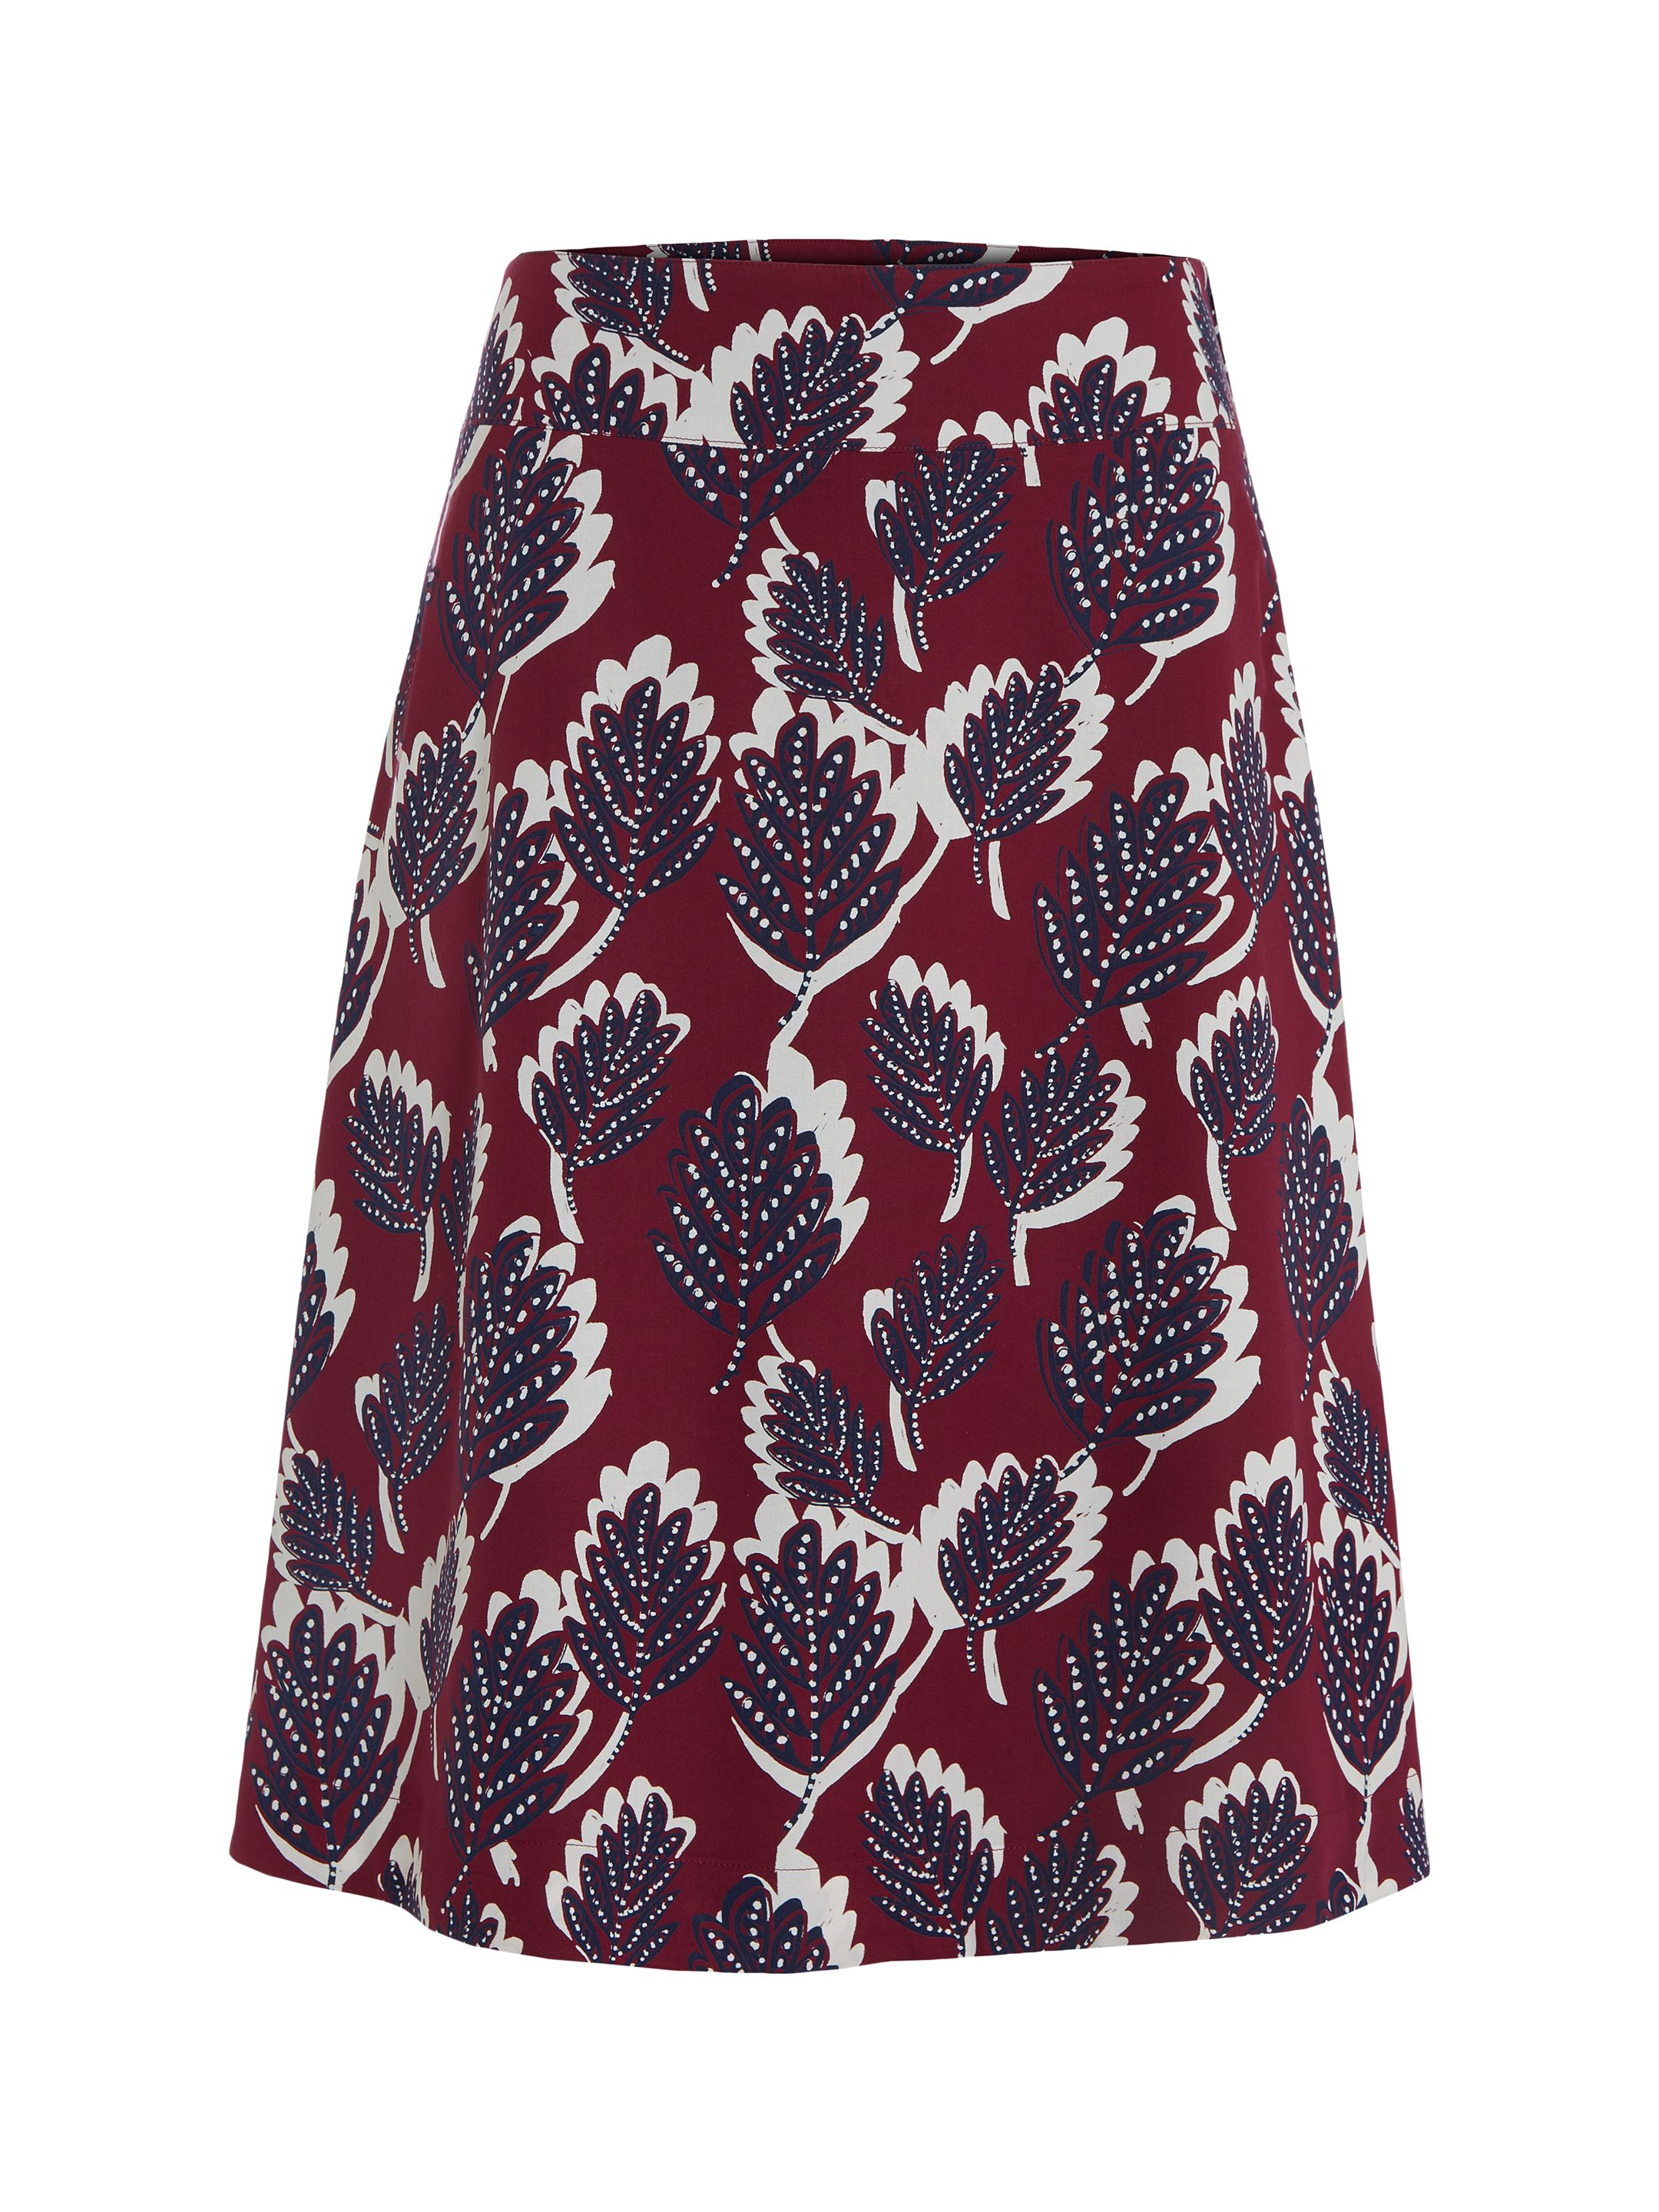 White Stuff Dotty Leaf Reversible Skirt, Red